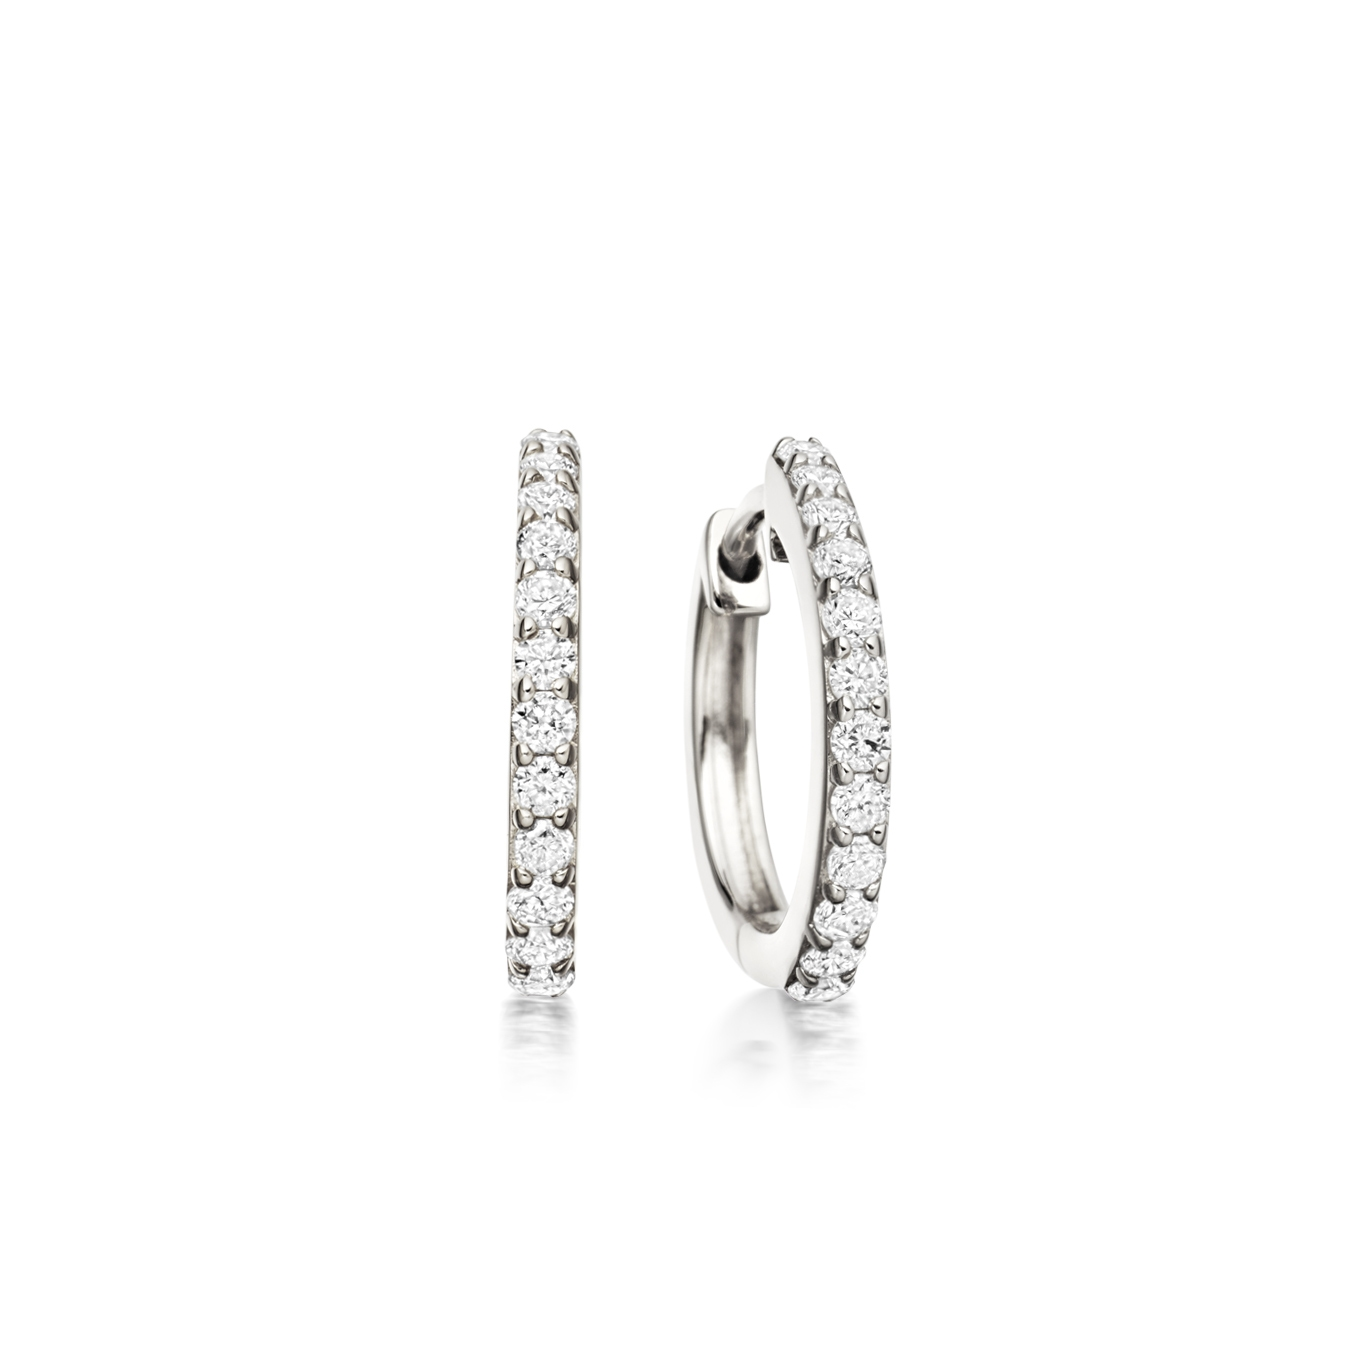 Medium Halo Diamond Hoop Earrings